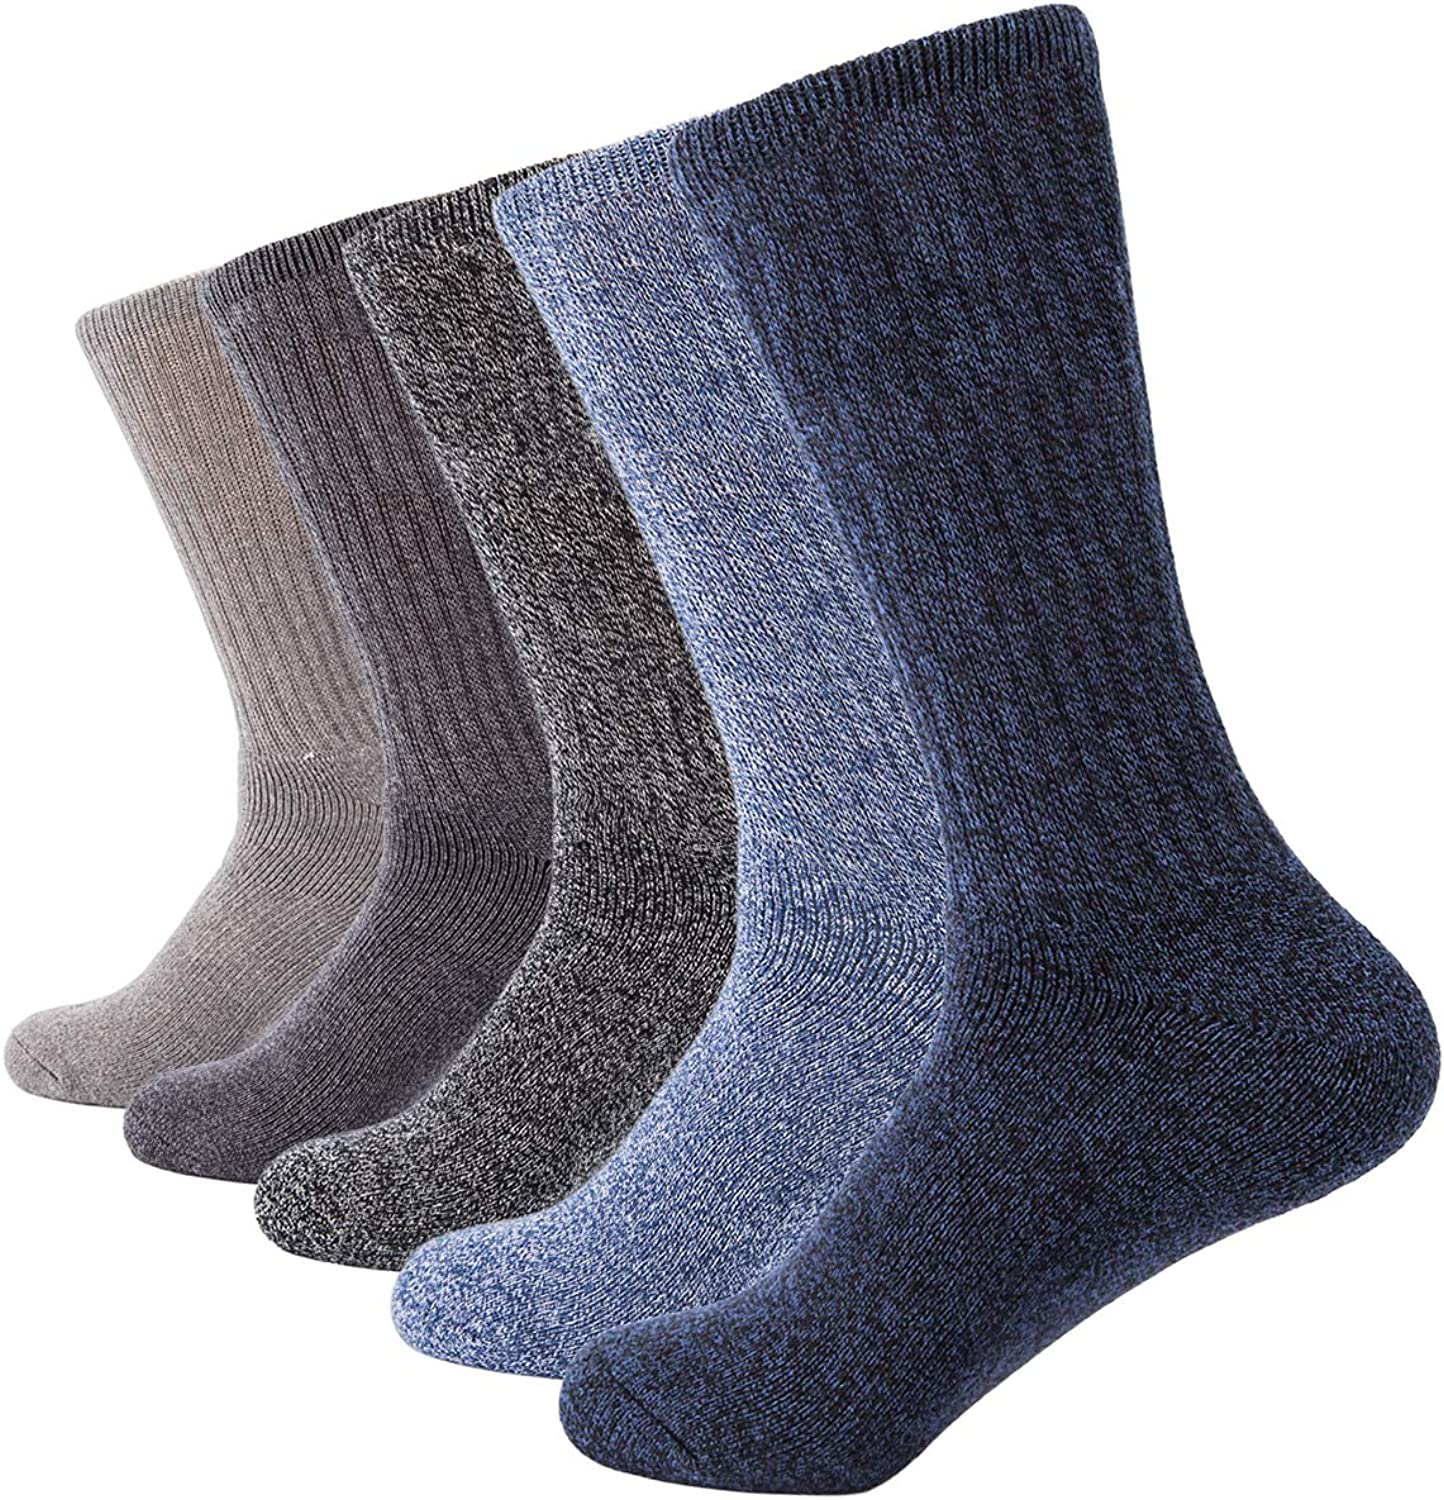 AIRSTROLL 5 Pack Crew Socks for Men Women Casual Knit Cotton Dress Socks